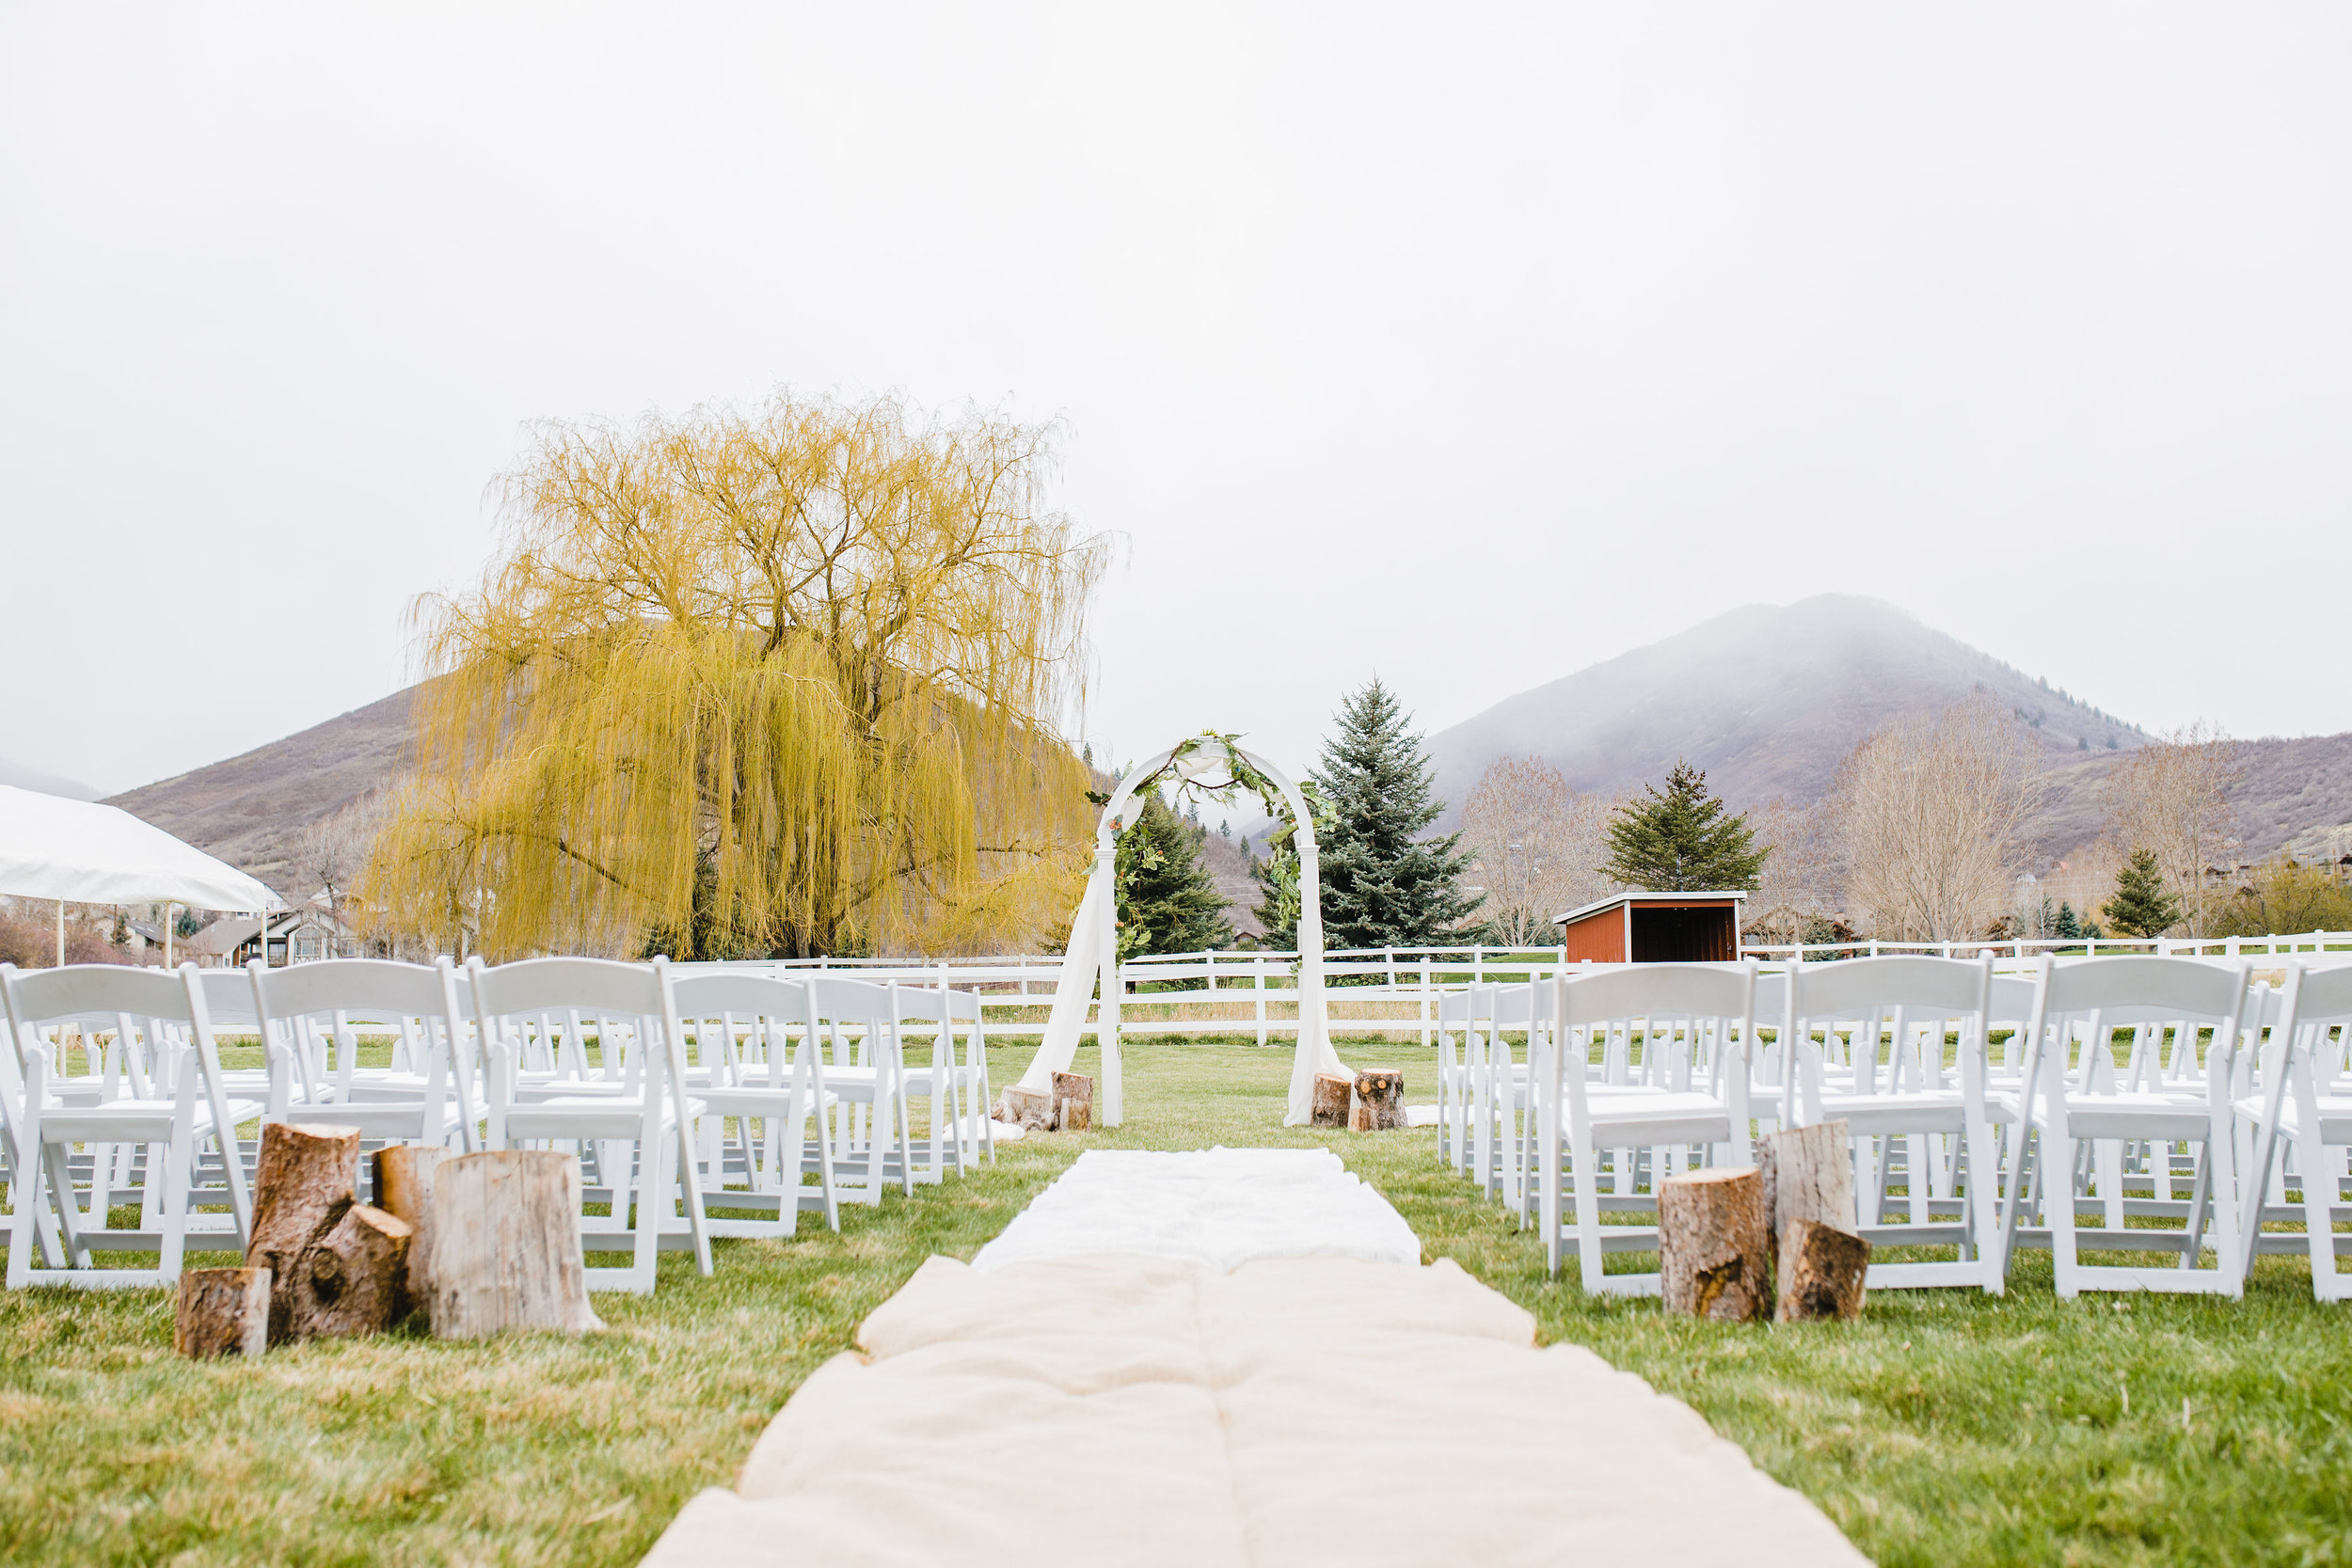 Best Wedding Photographer in Aurora Colorado Wedding Arch Outdoor Wedding Fall Wedding Wedding Isle Wedding Chairs Rustic Wedding